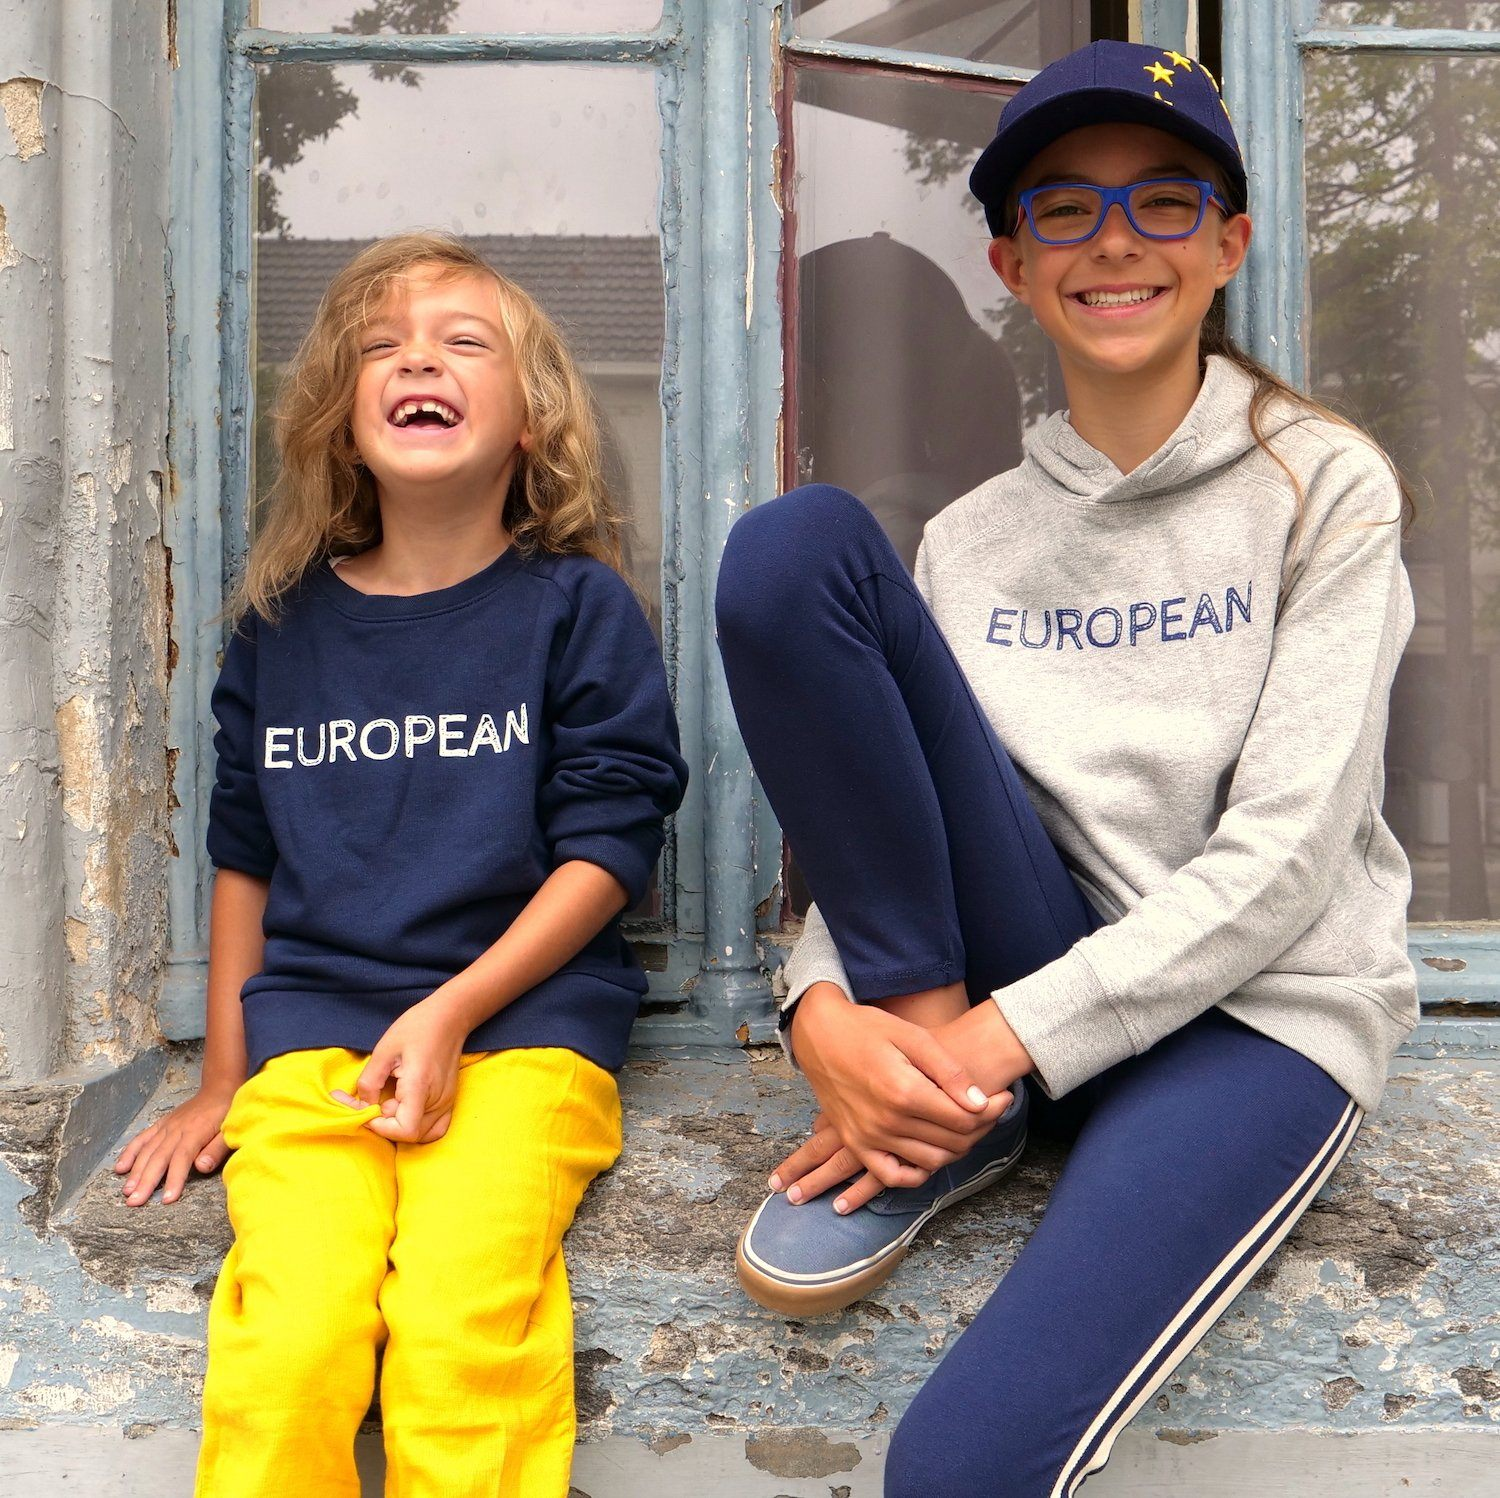 Hoodie Kids - Blue on Gray statement, Hoodie - European Flag Fashion, Clothing & Apparel from  European By Choice